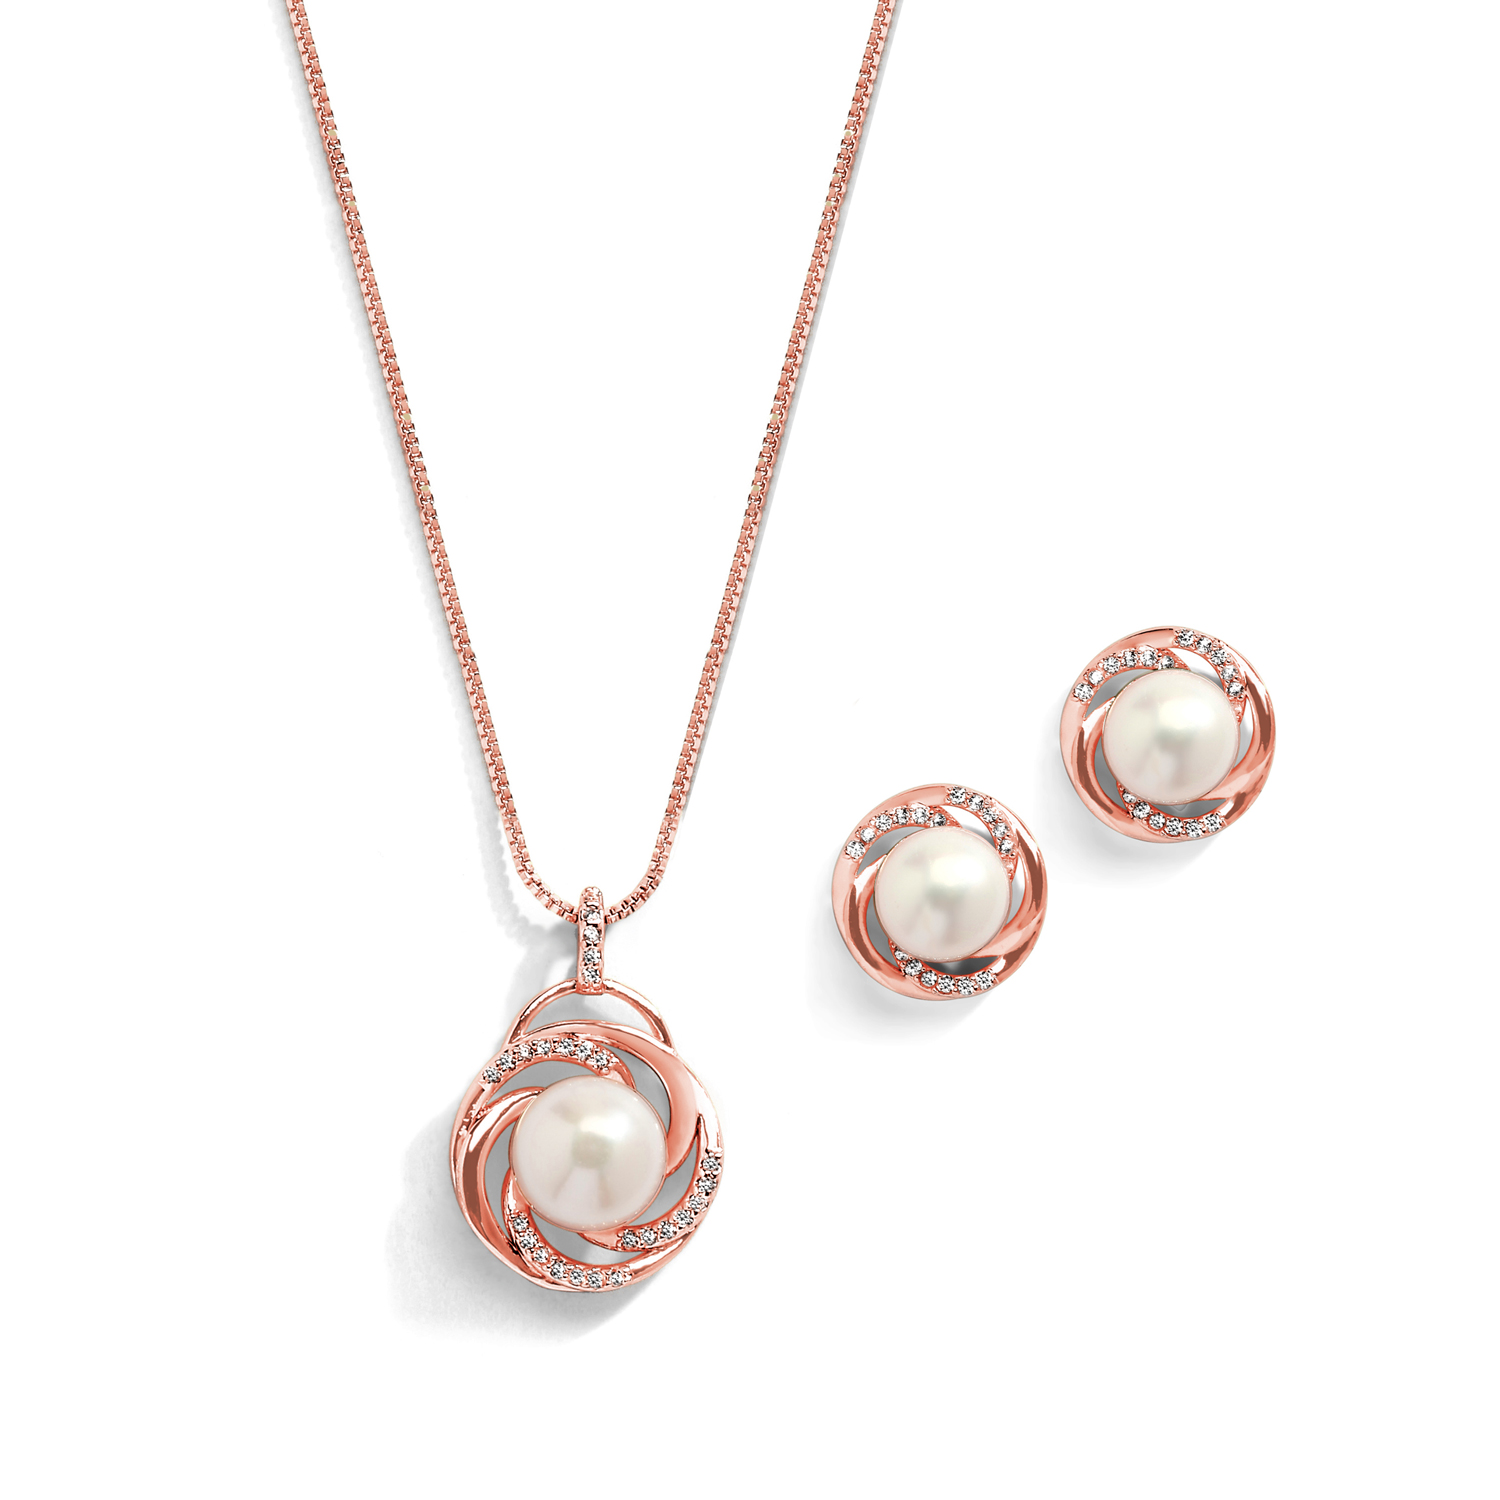 c2f1e1a10 Mariell Freshwater Pearl Wedding Necklace and Earrings Rose Gold Jewelry Set  for Bridesmaids & Brides